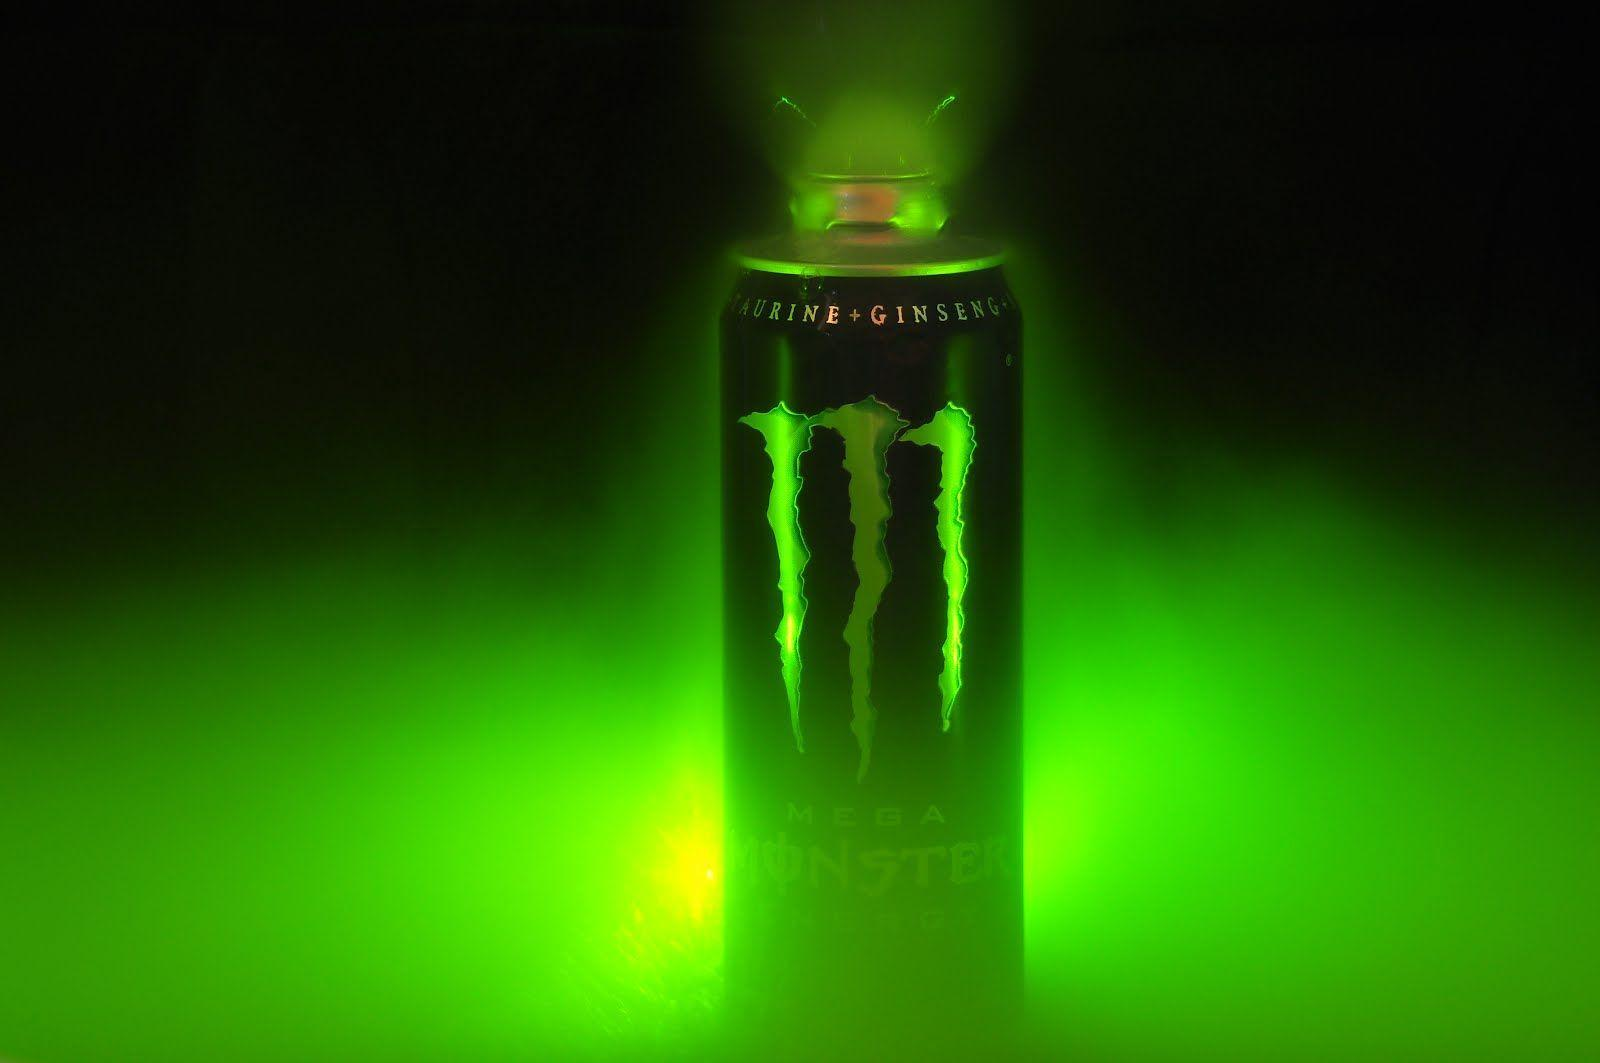 76+] Monster Energy Drink Wallpapers on